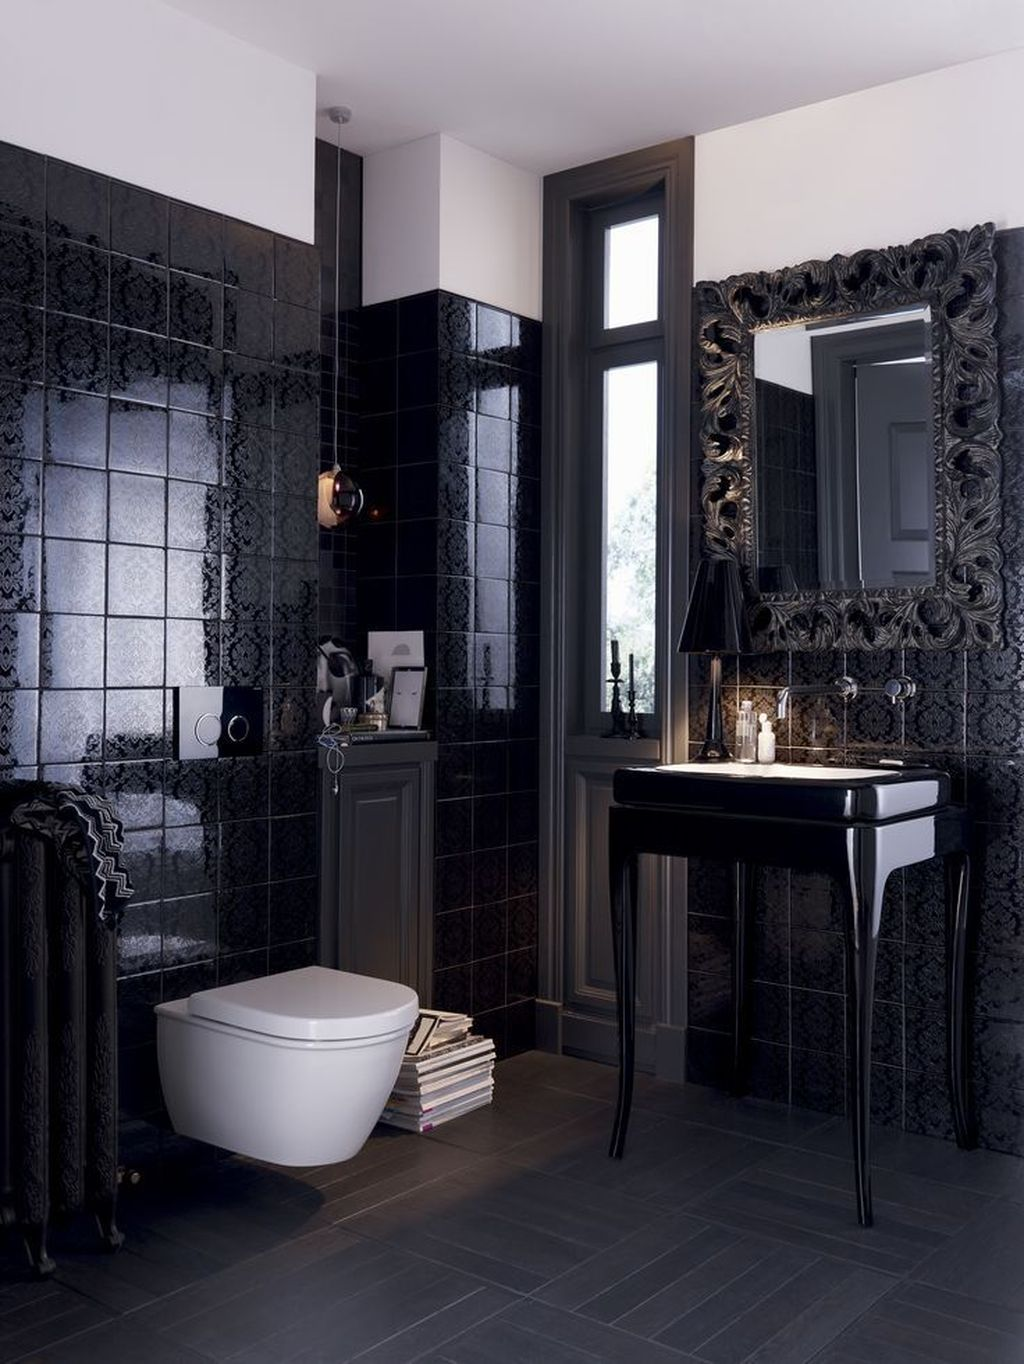 Inspiring Black Powder Room Design Ideas With Modern Style 31